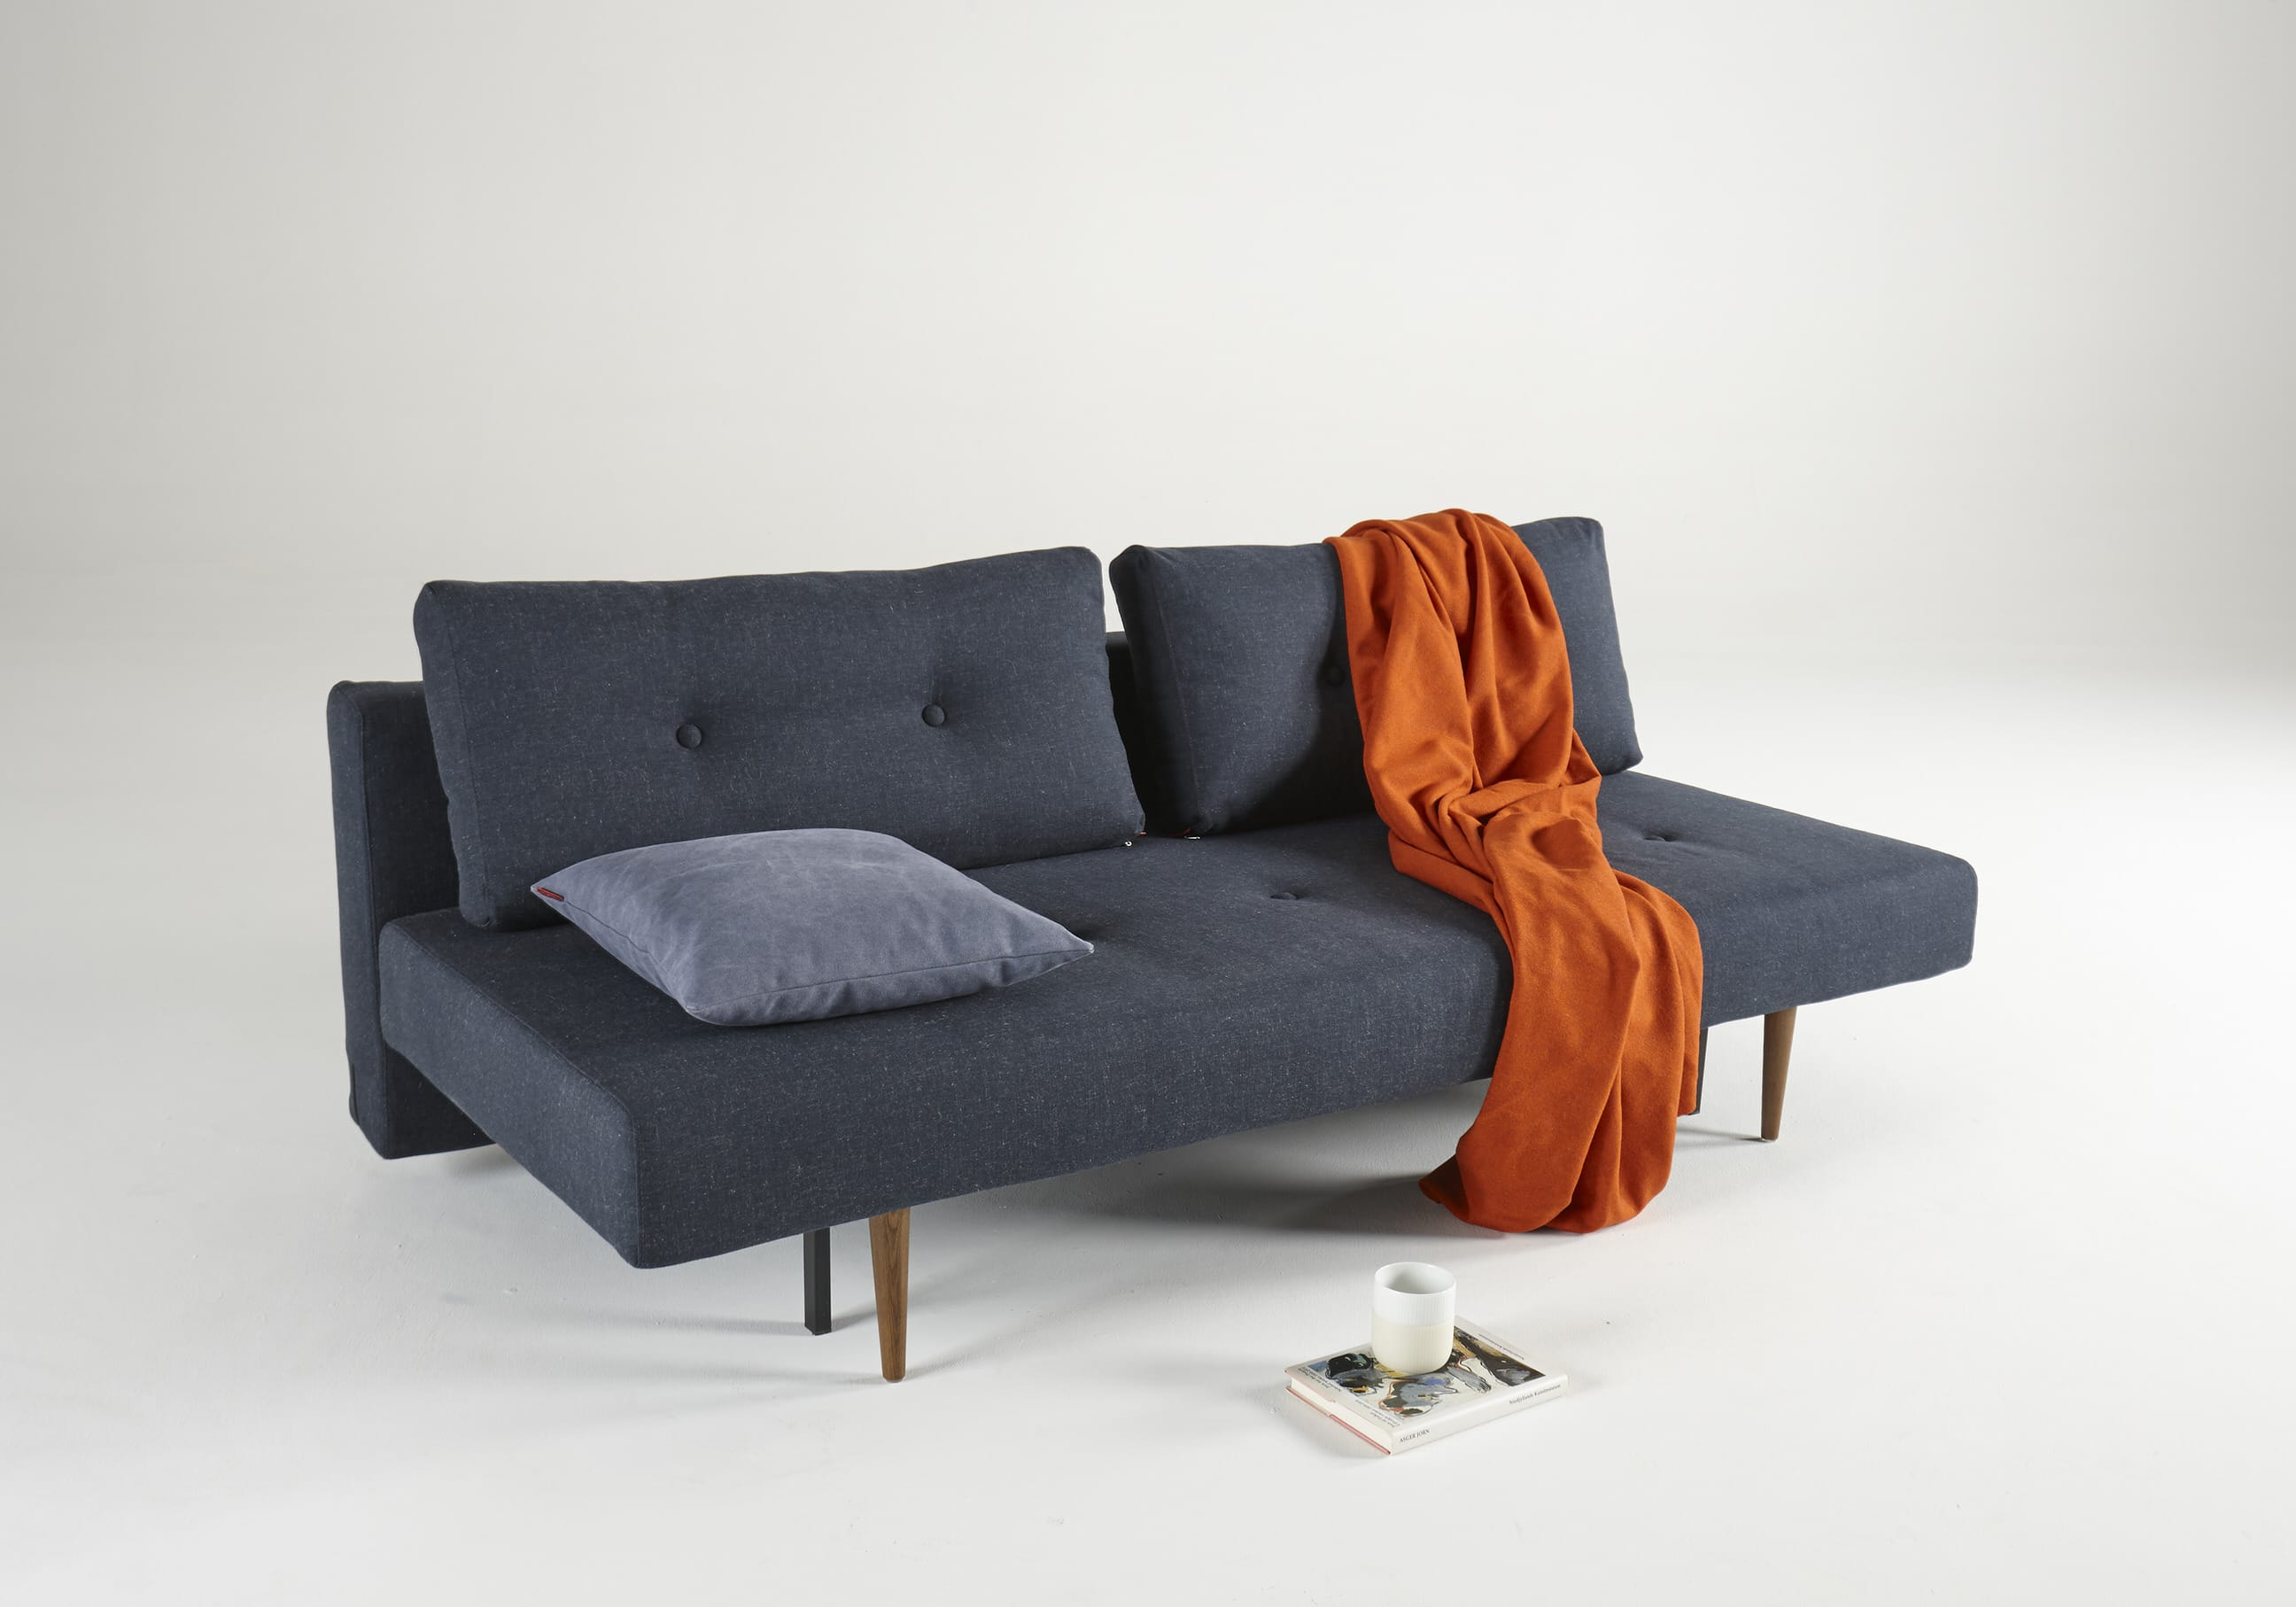 Recast Plus Sofa Bed (Full Size) Nist Blue by Innovation